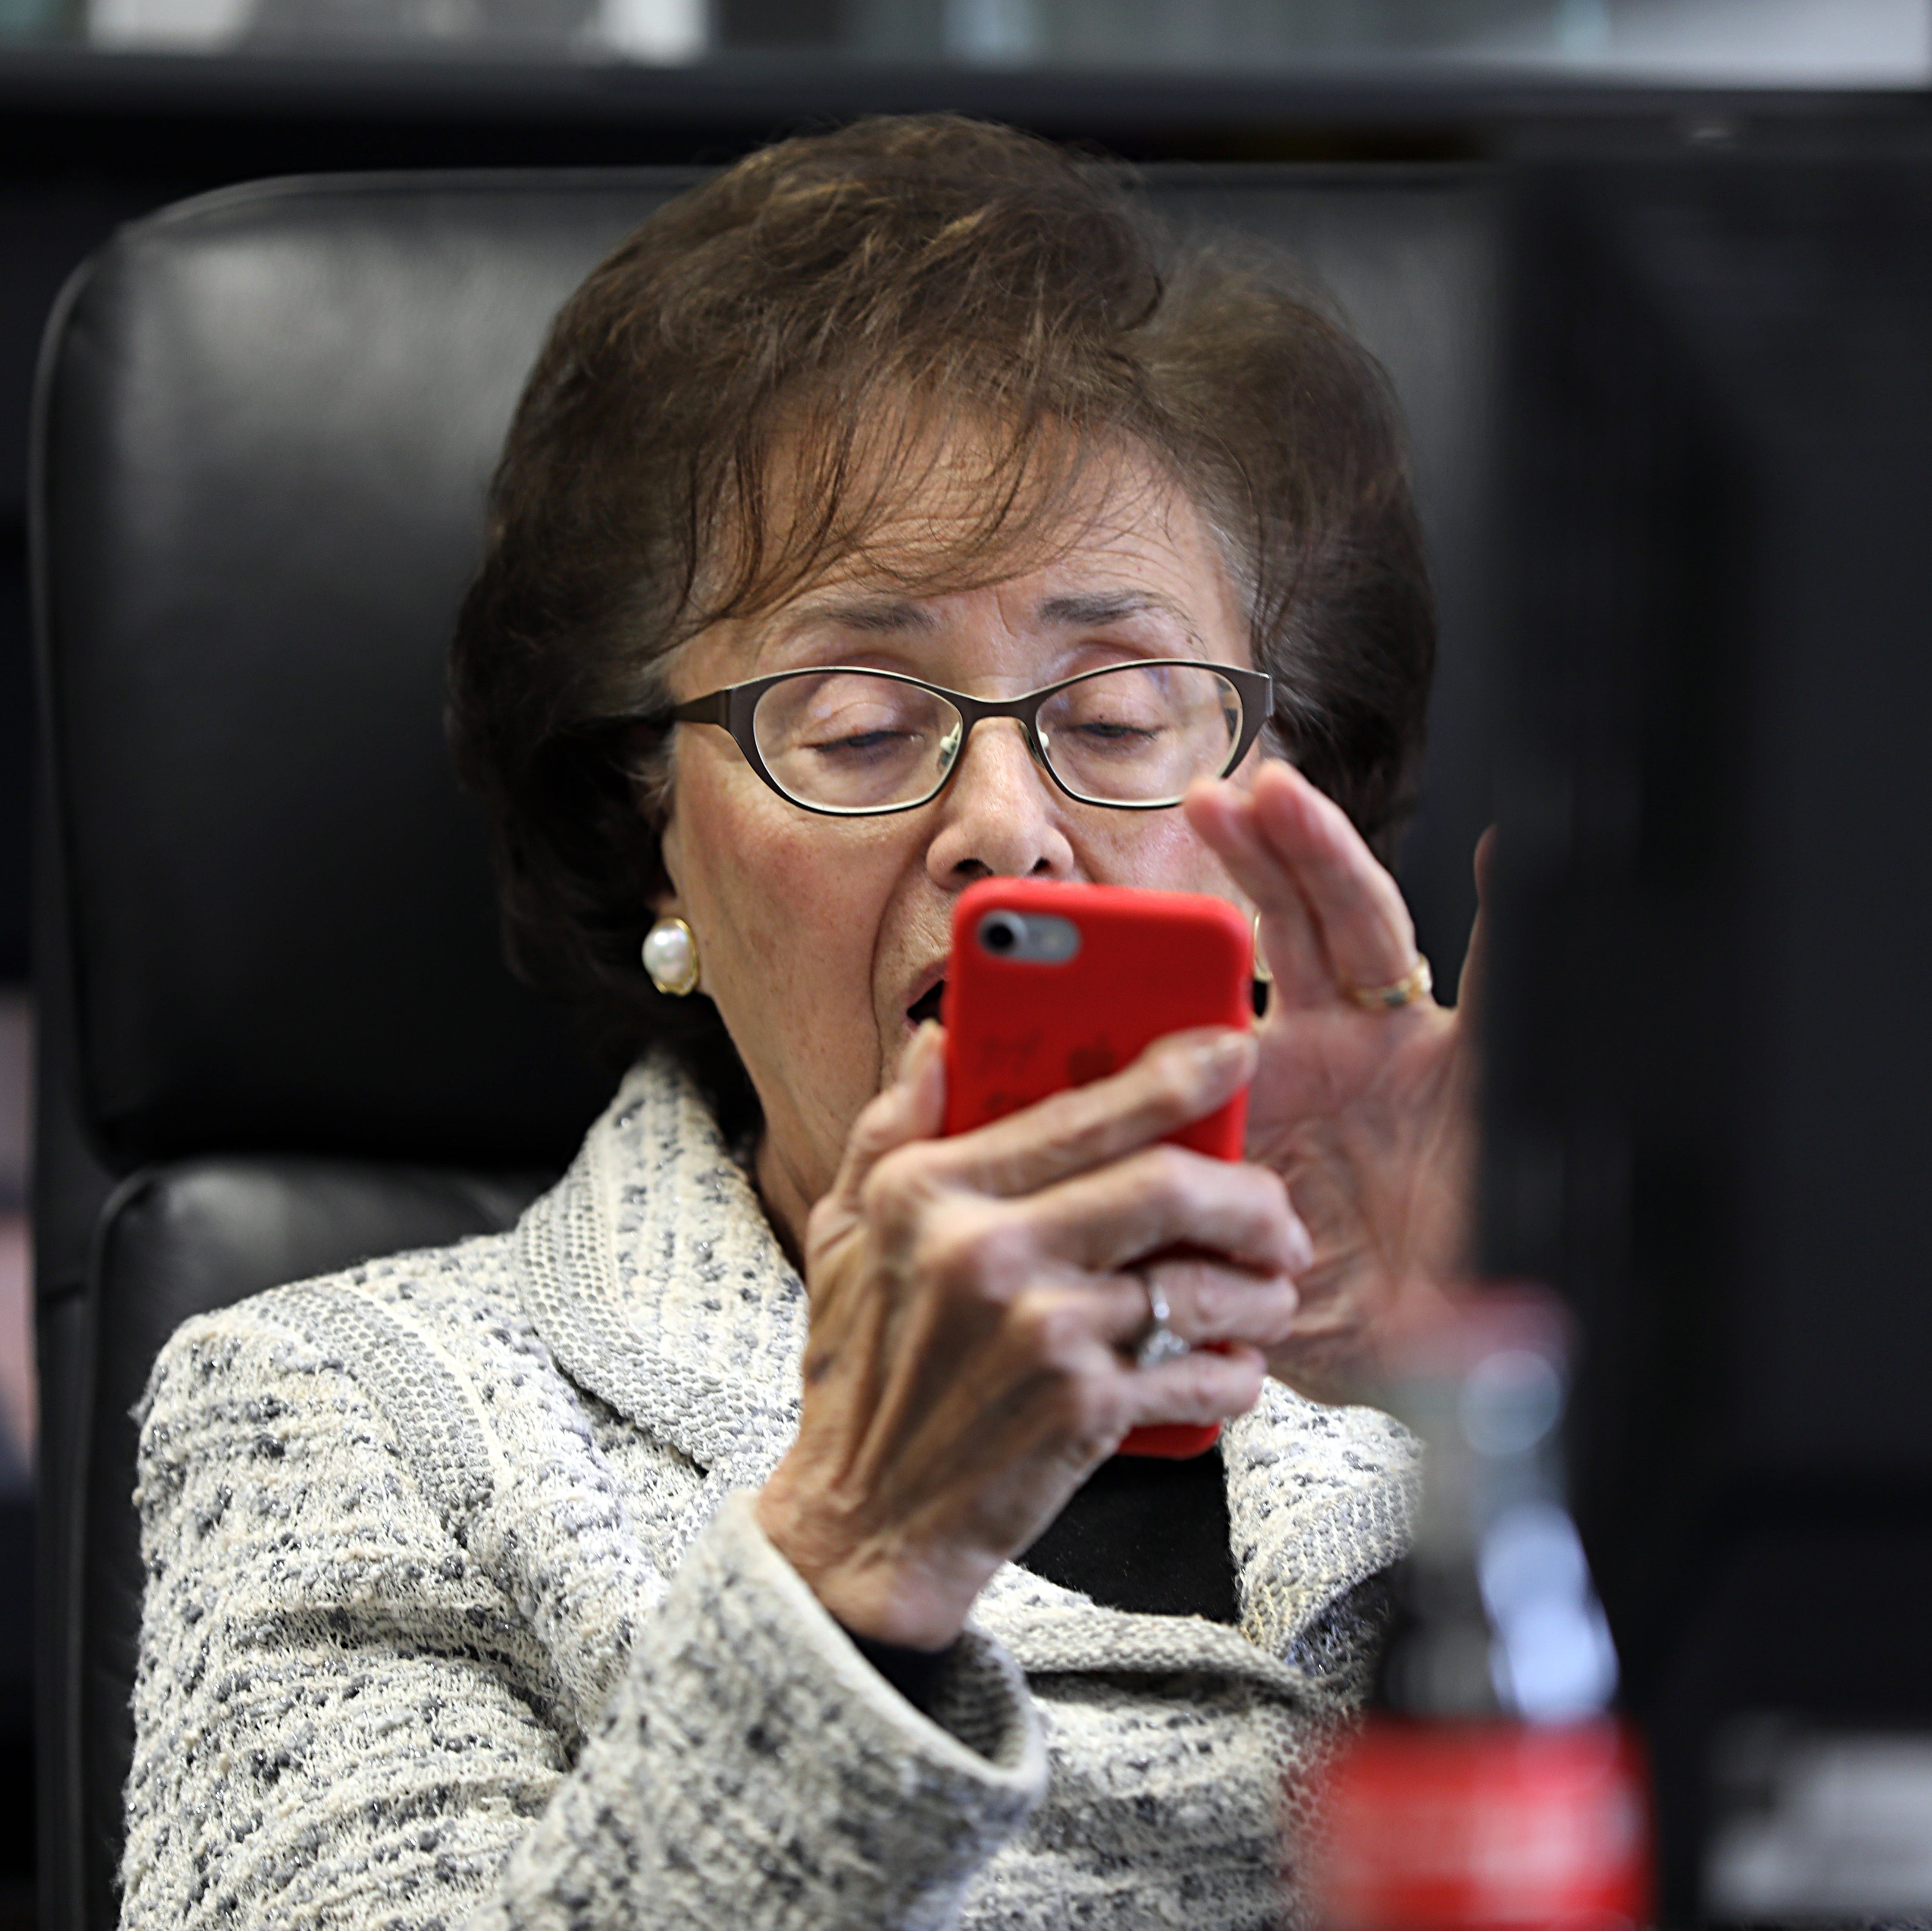 U.S. Rep. Nita Lowey on 2020 presidential picks, Chelsea Clinton and Trump